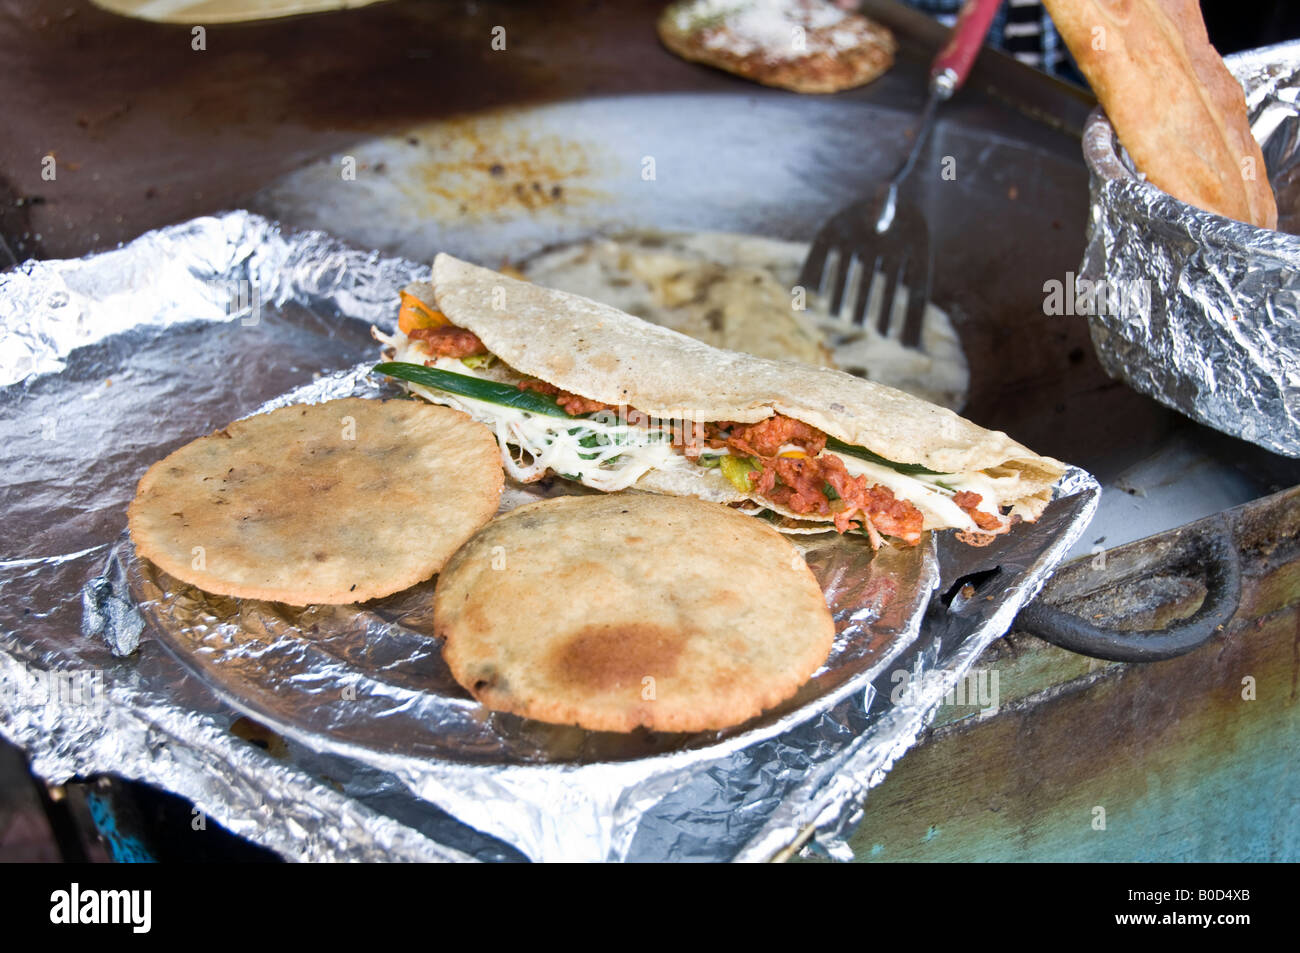 Tacos (top) and Empanadas (two at the bottom) being cooked and sold in a street market in Puebla, Mexico. Tasty, - Stock Image